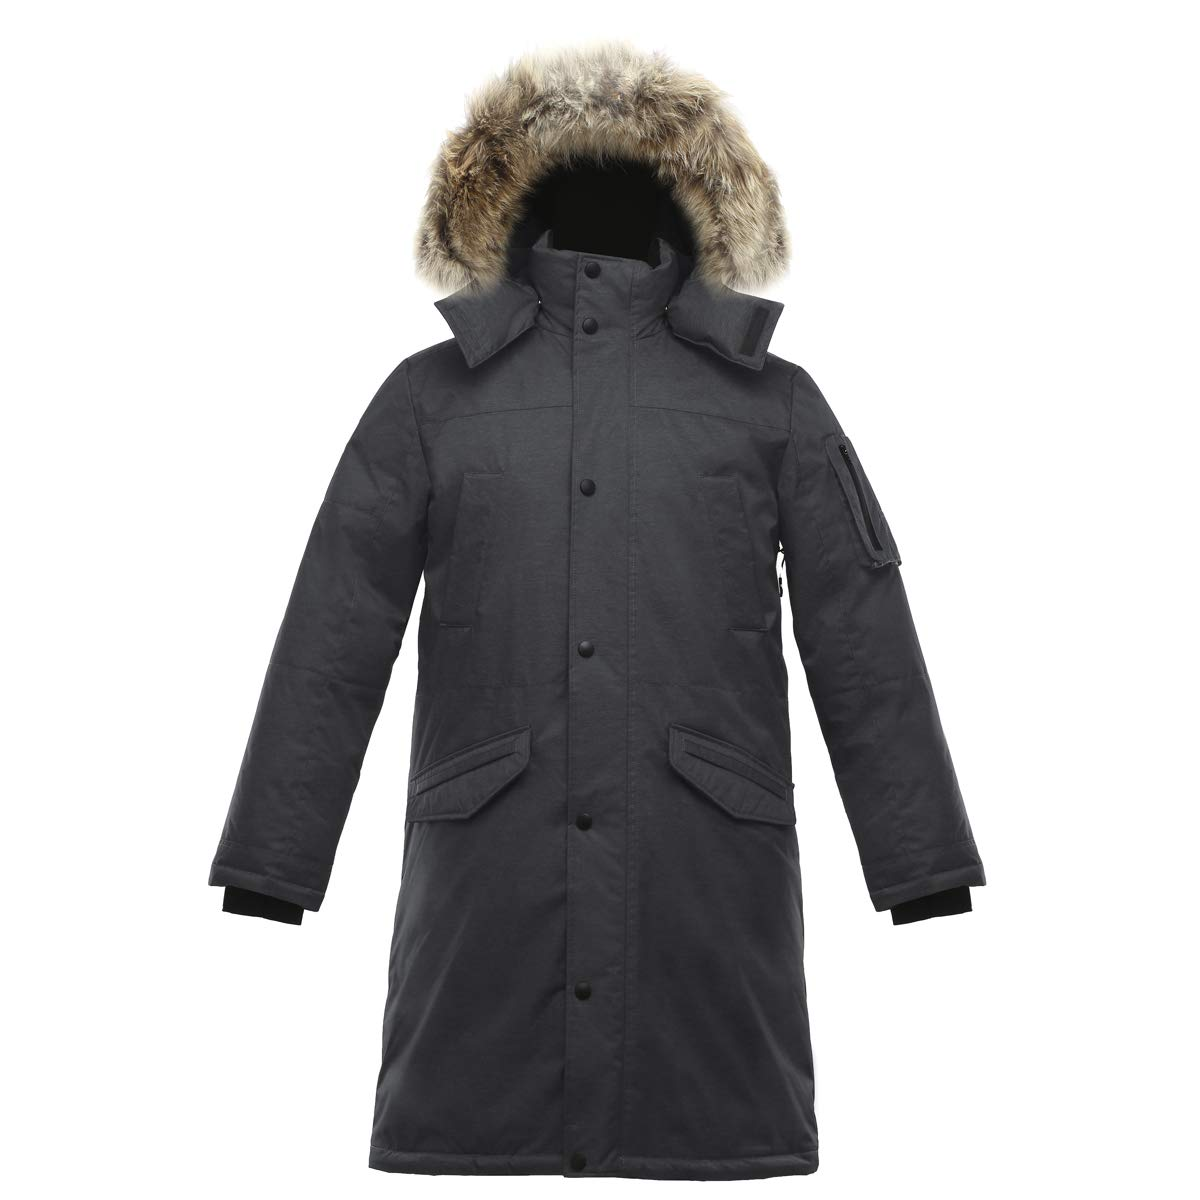 Triple F.A.T. Goose SAGA Collection   Eberly II Mens Hooded Goose Down Jacket Parka with Real Coyote Fur